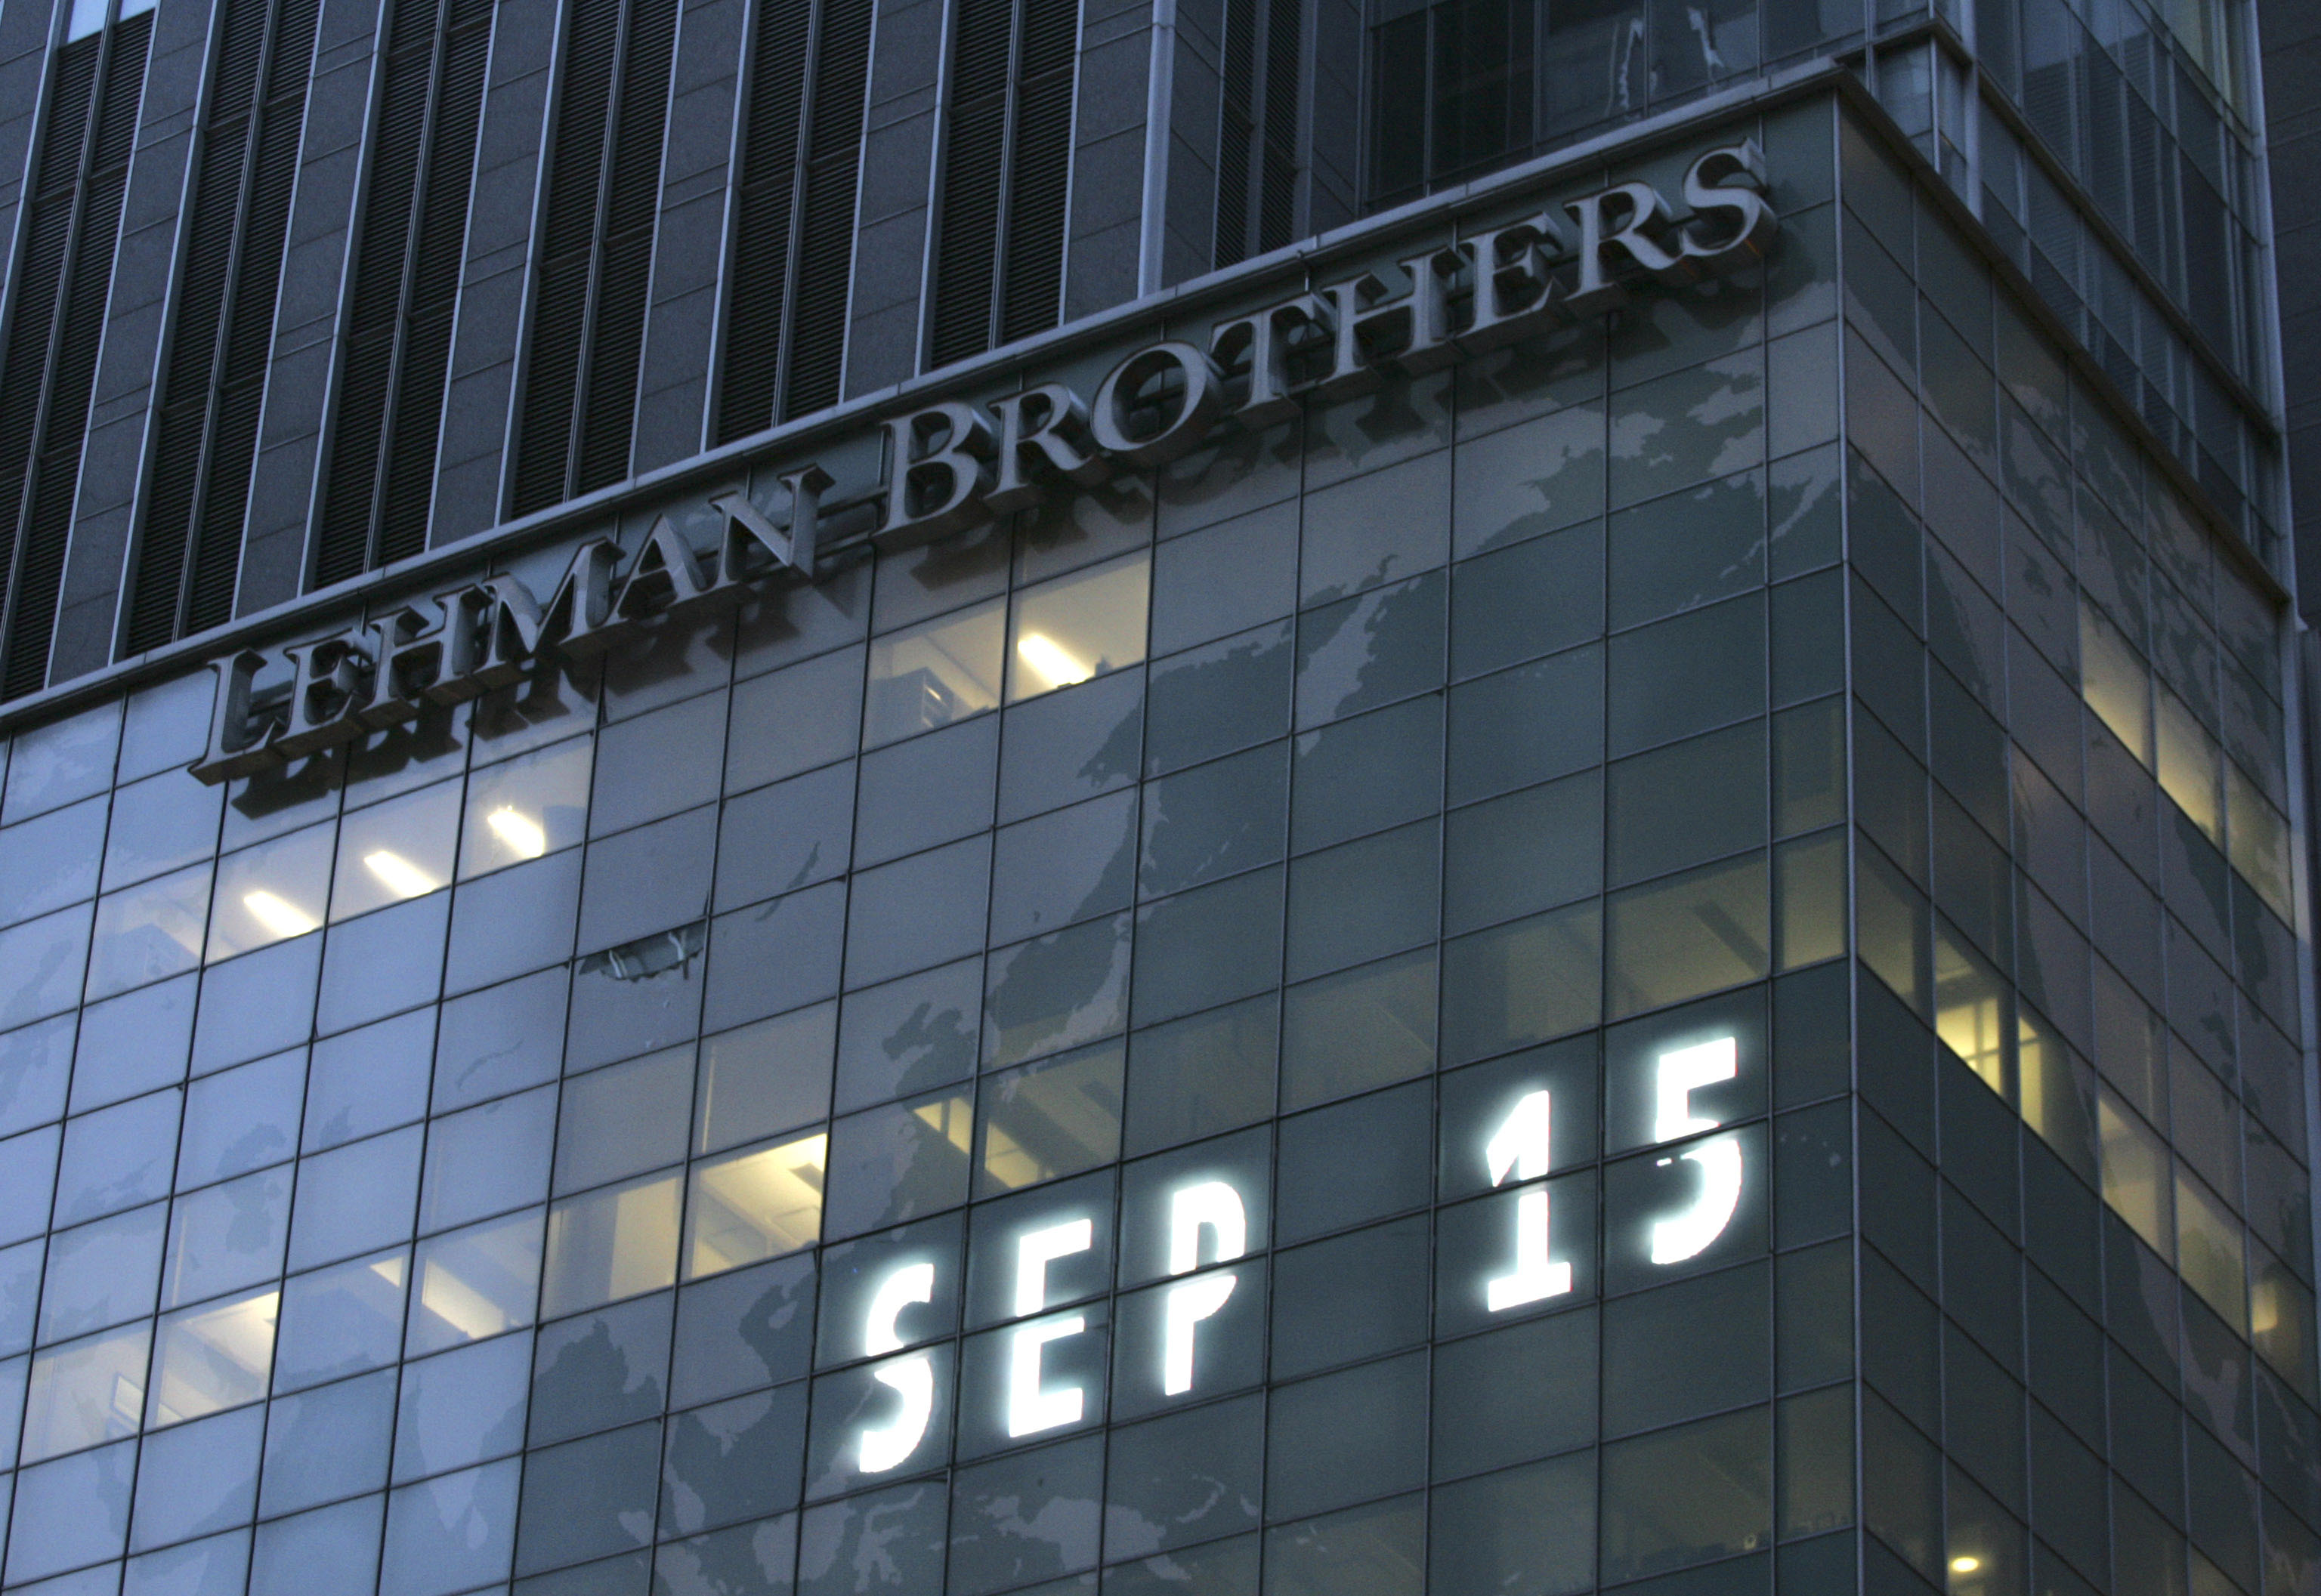 On 15th September 2008, Lehman Brothers filed for the biggest bankruptcy in history